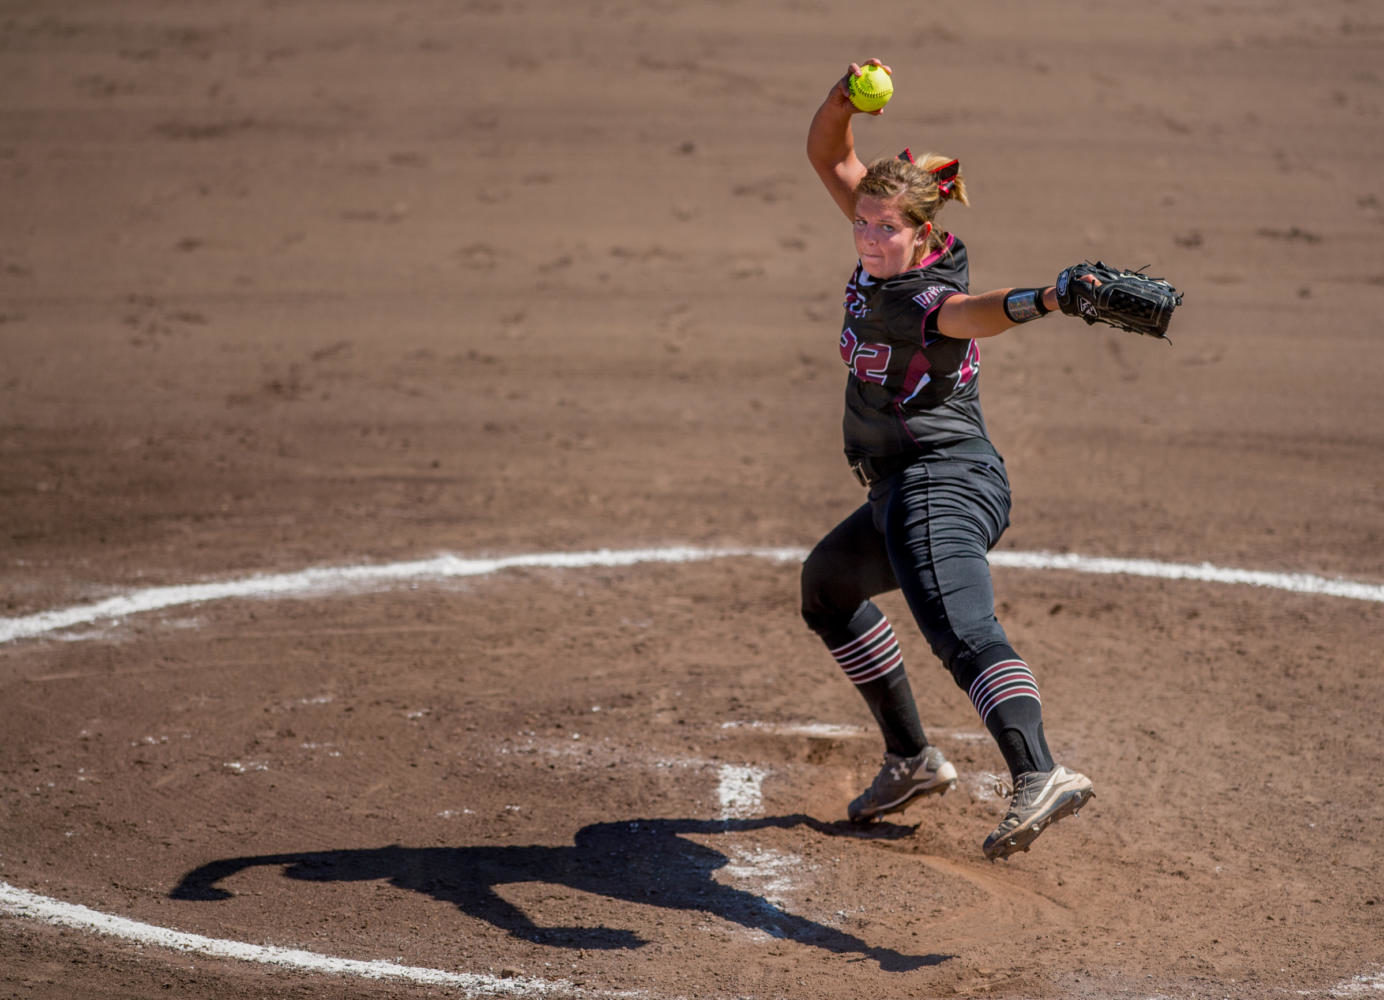 SIU junior pitcher Brianna Jones winds up the ball Sunday, Sept. 10, 2017, during the Salukis' second game of the season against John A. Logan College at Brechtelsbauer Field. (Brian Muñoz | @BrianMMunoz)